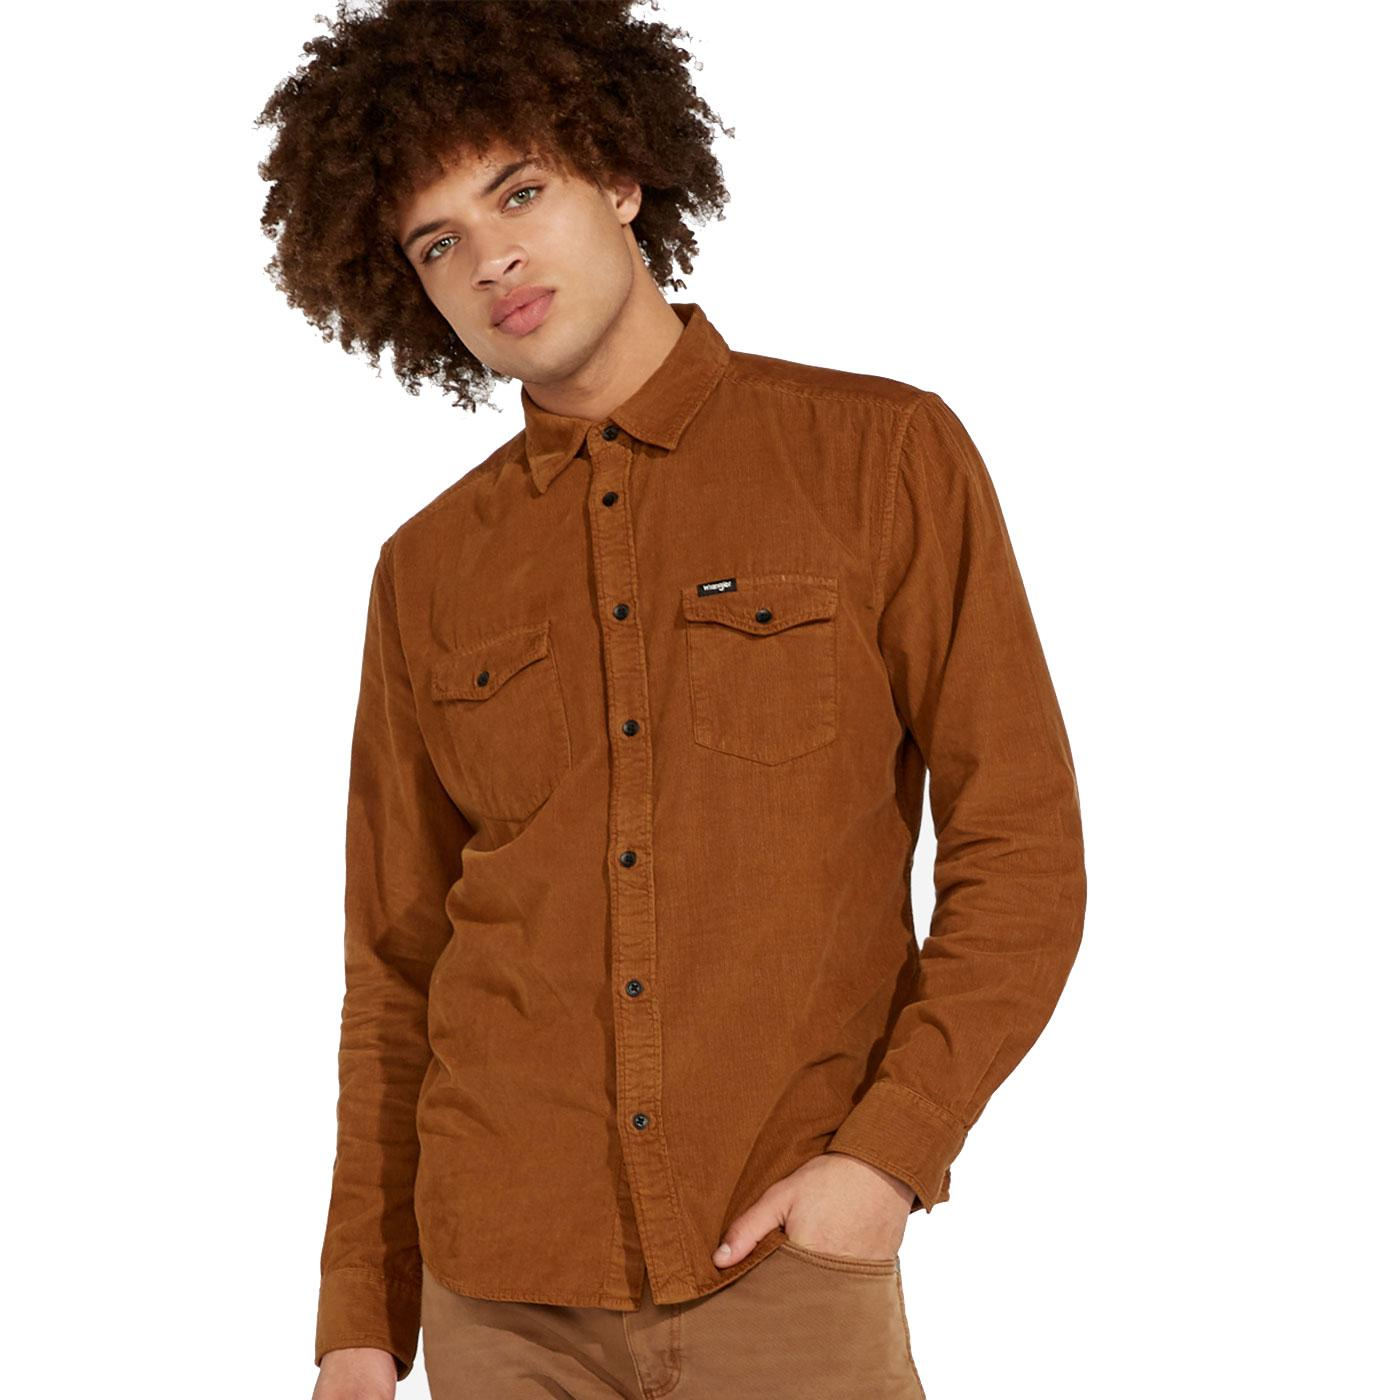 WRANGLER 70's Retro 2 Pocket Western Cord Shirt